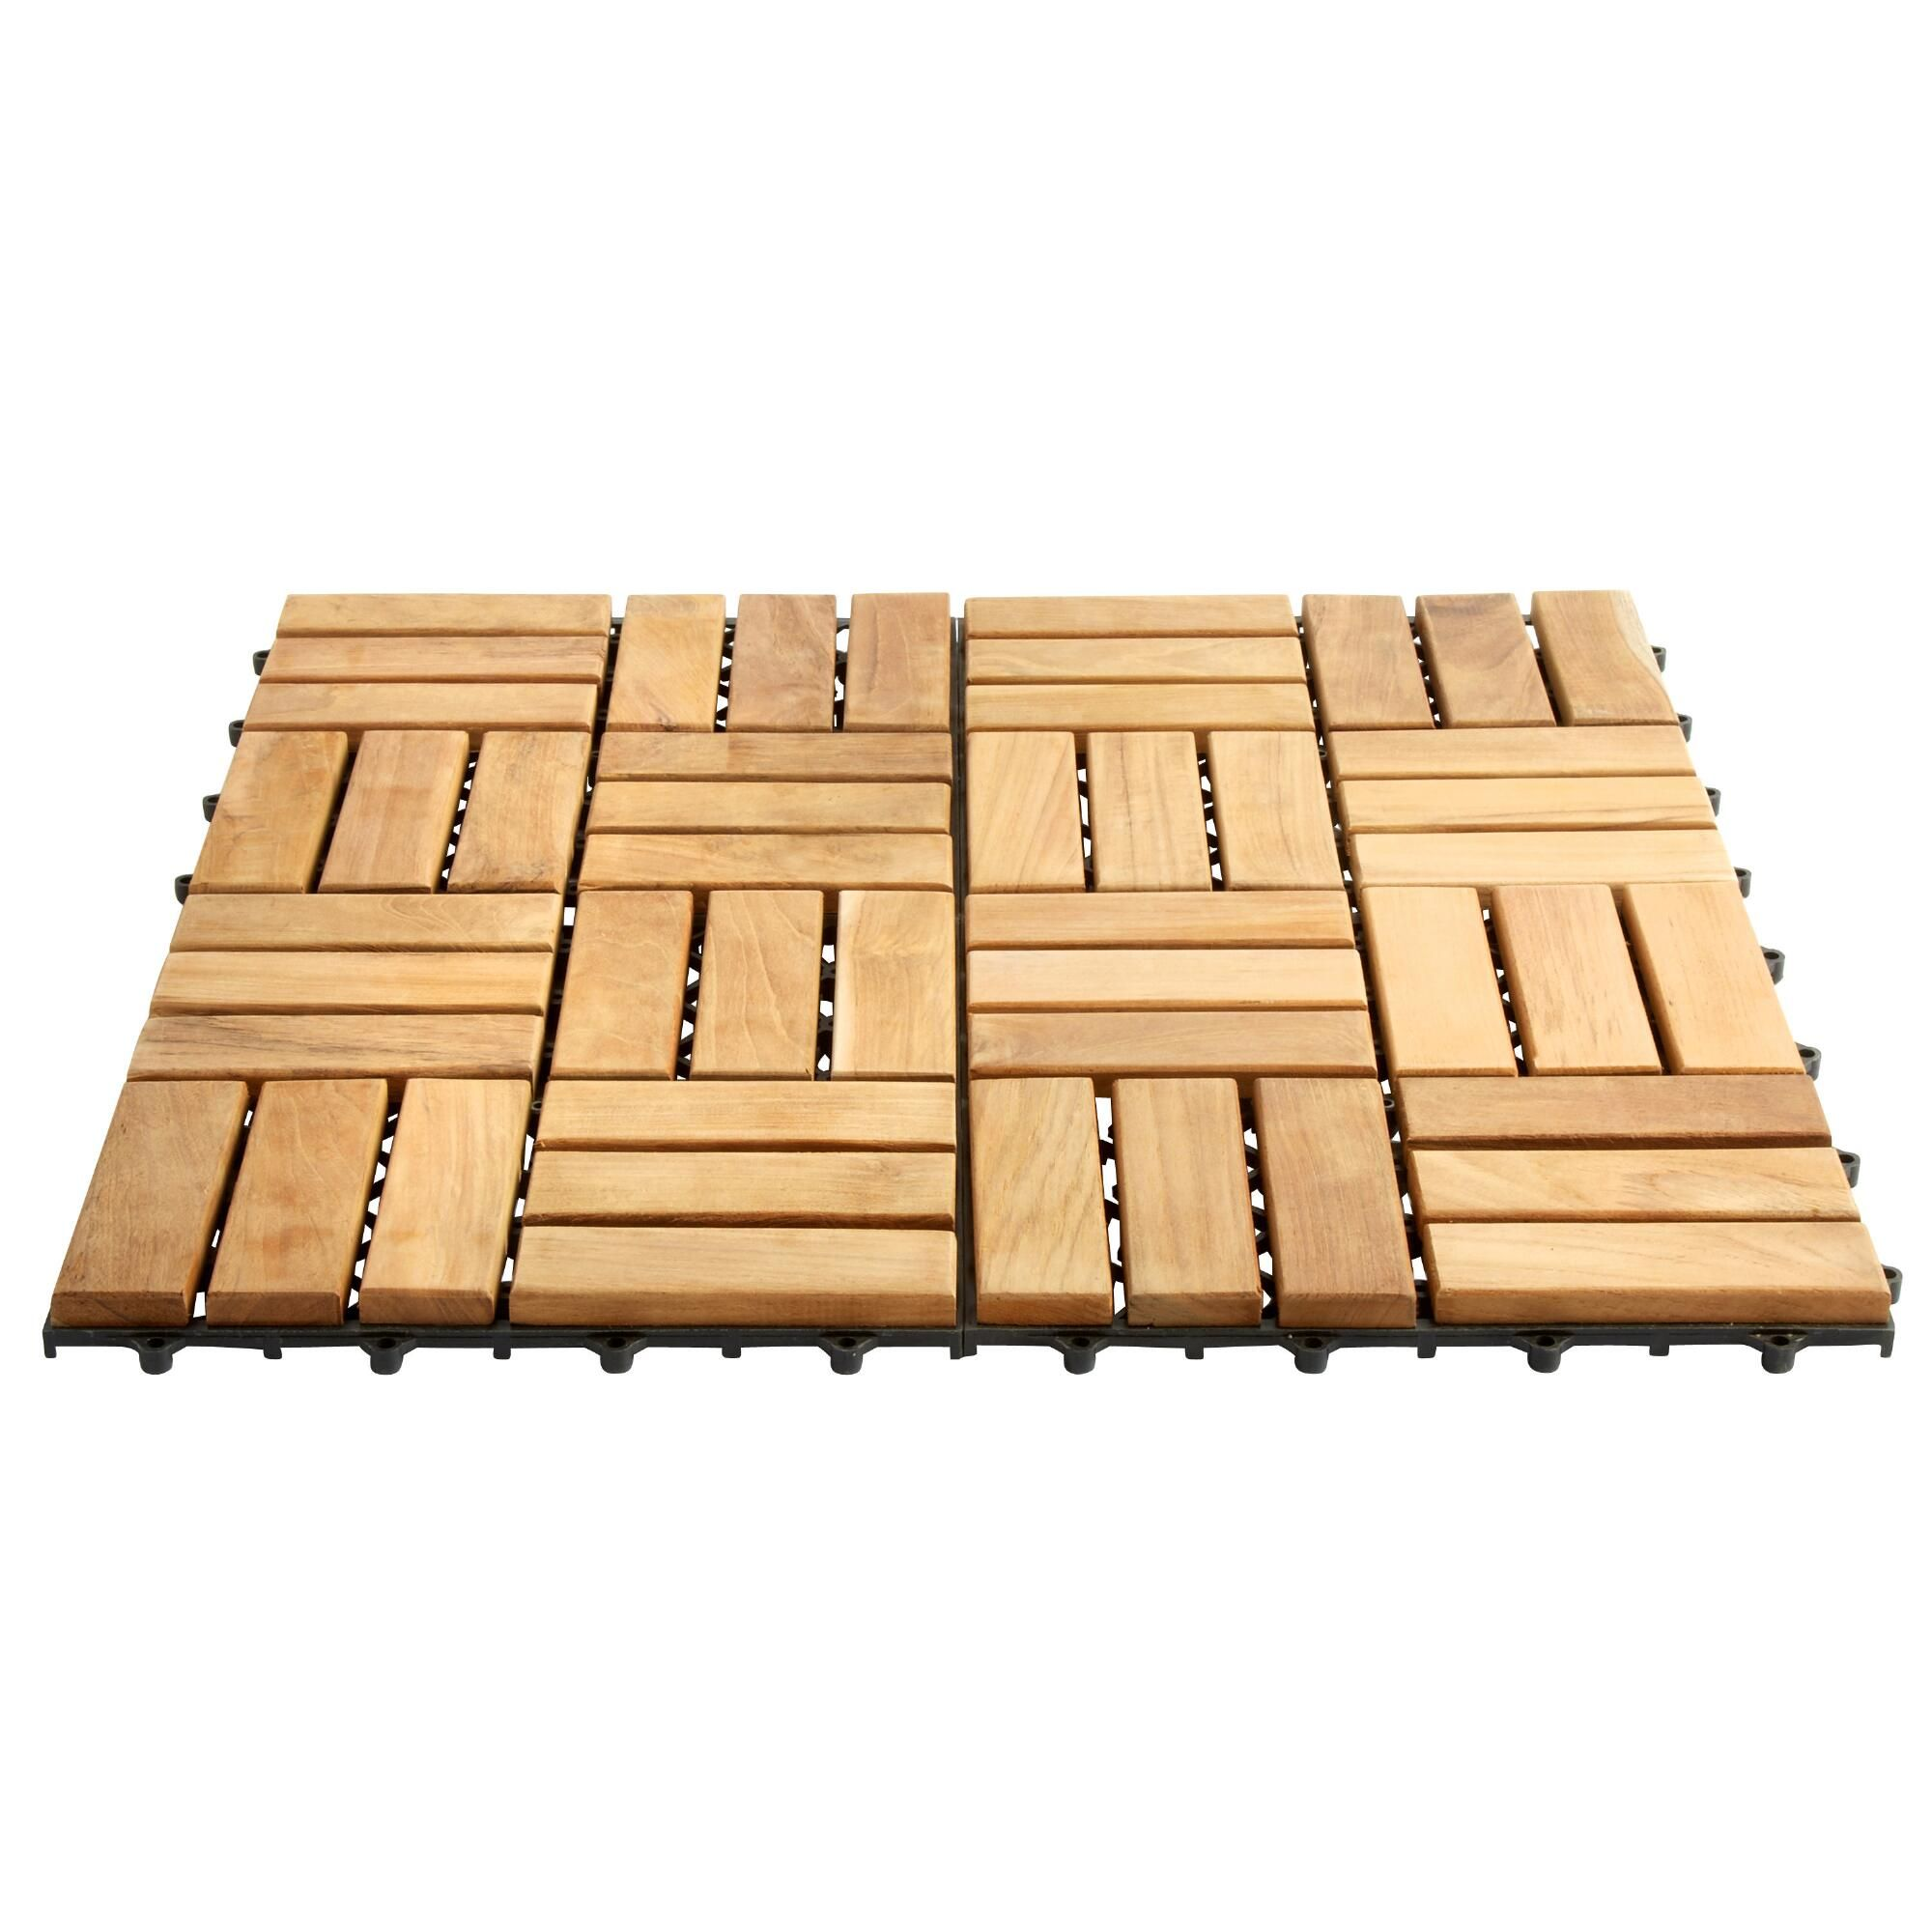 Teak Flooring Tiles Are A Terrific Weather Resilient Option For Your Deck Or Patio These Stylish Squares Easy To Install And Give E New